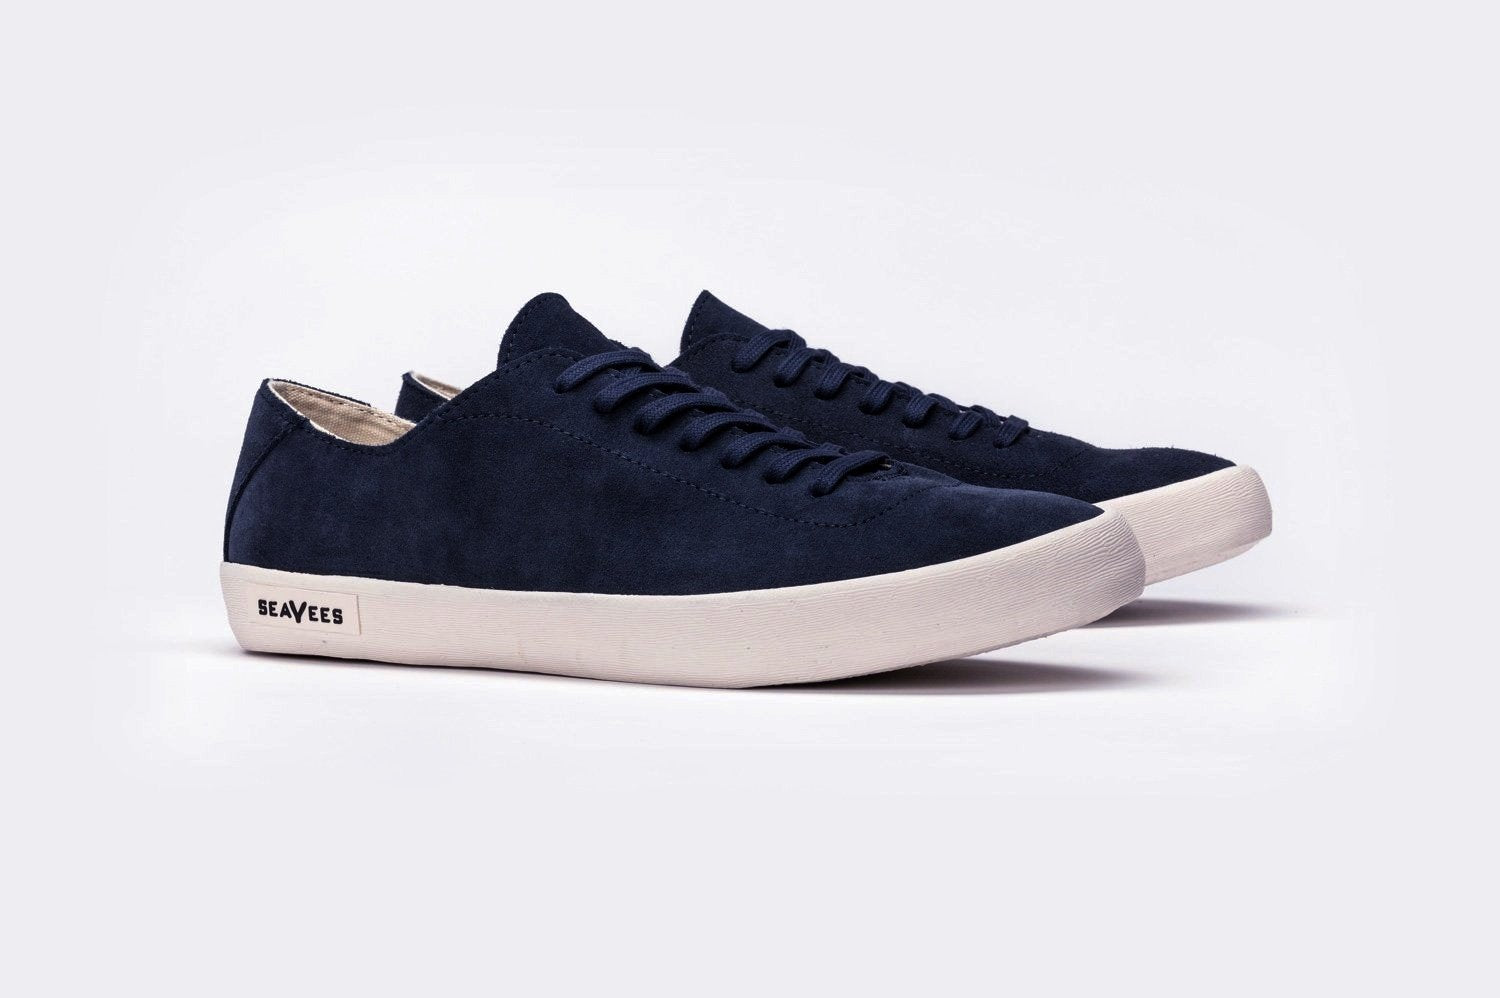 SeaVees Raquet Club Suede Sneakers